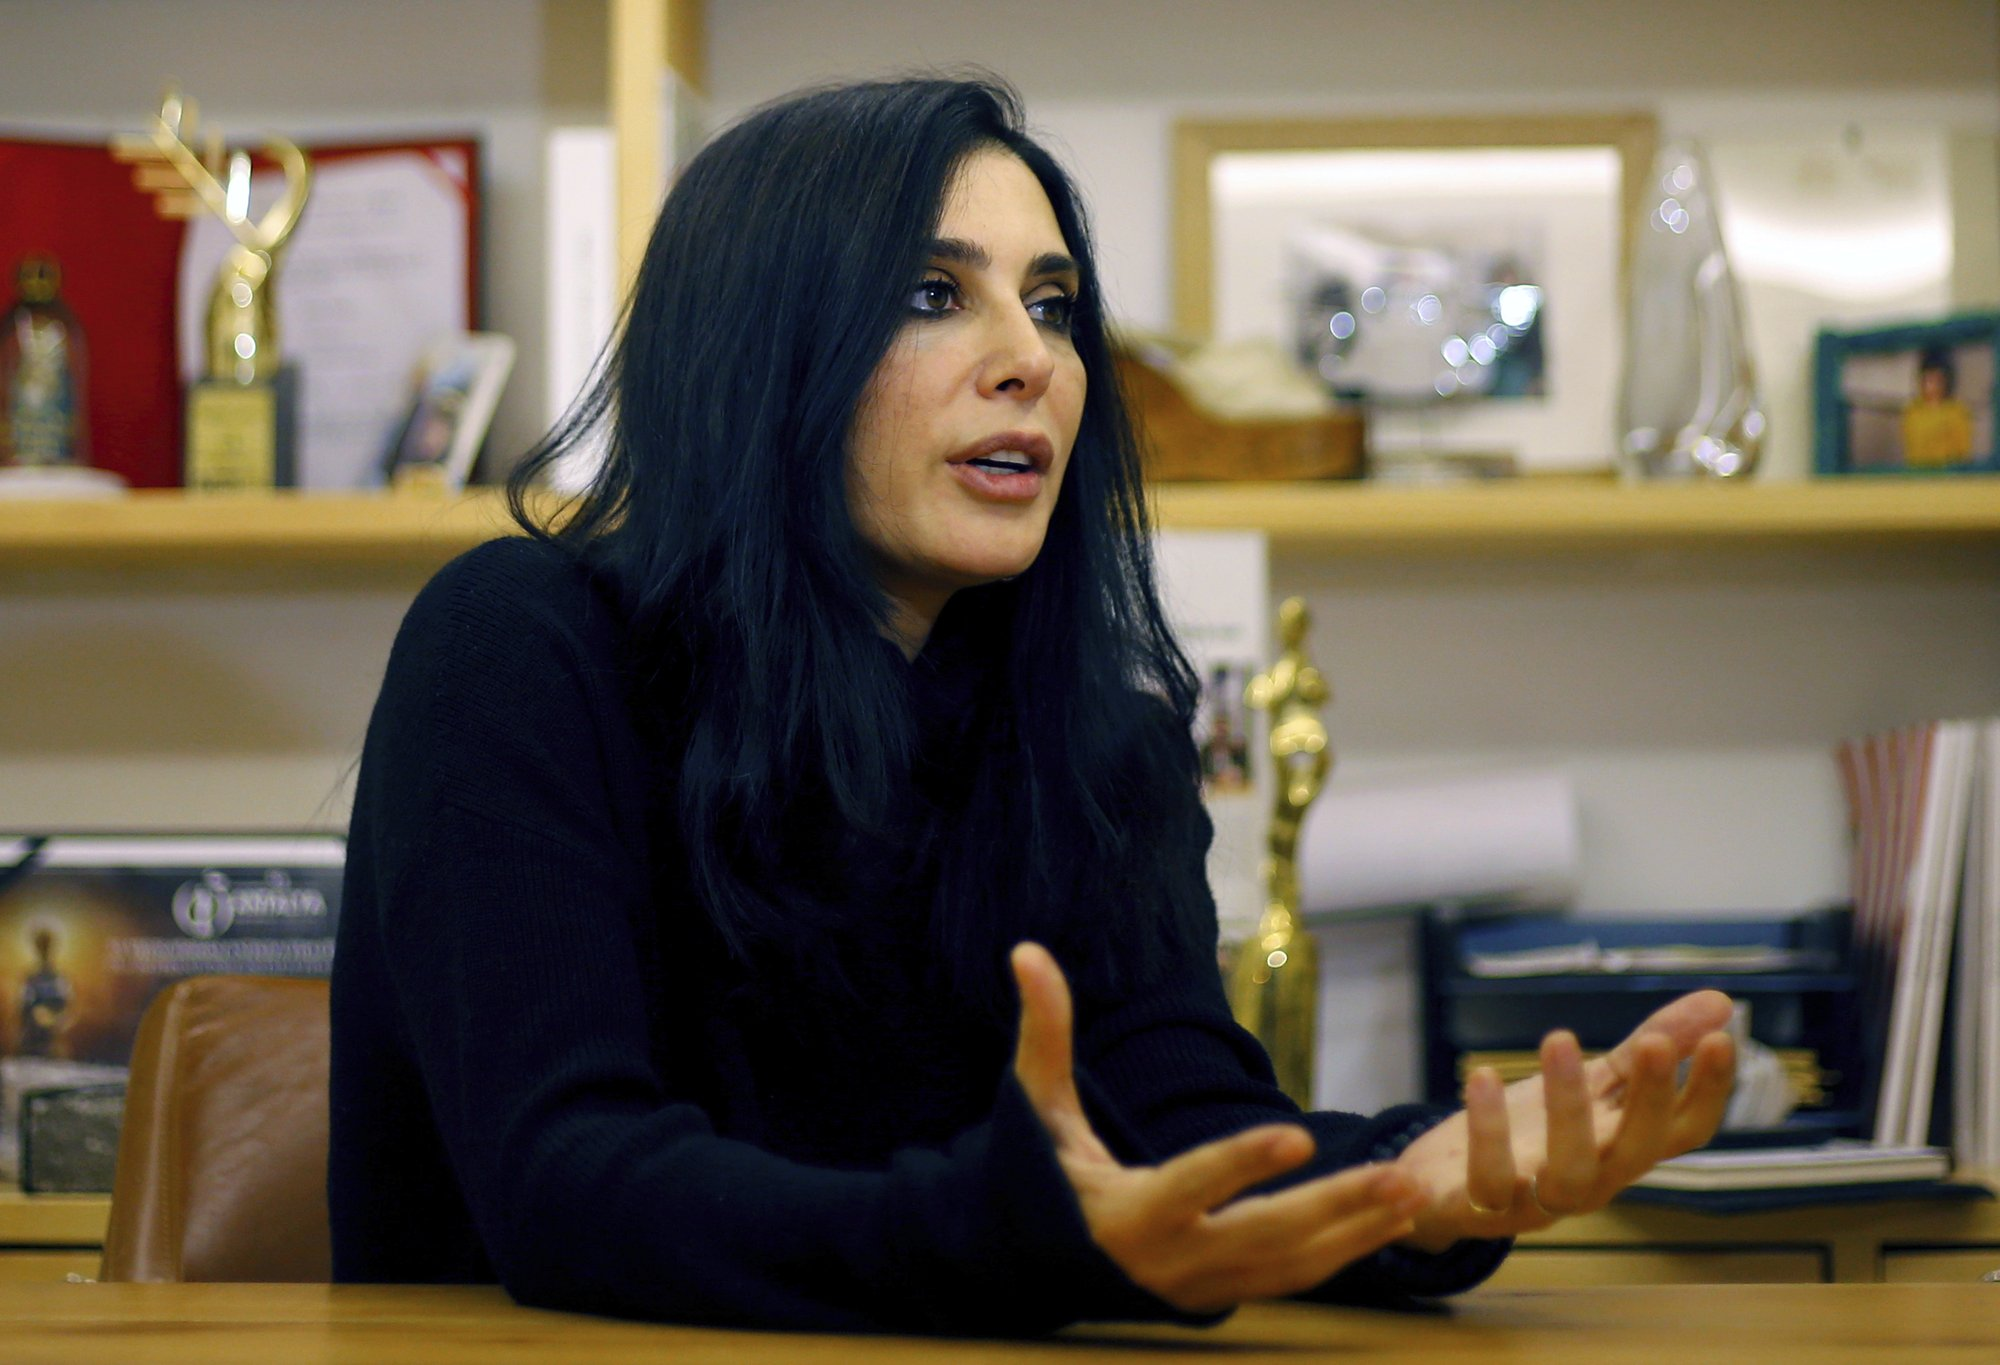 Lebanon's star filmmaker makes Oscars history with her nom